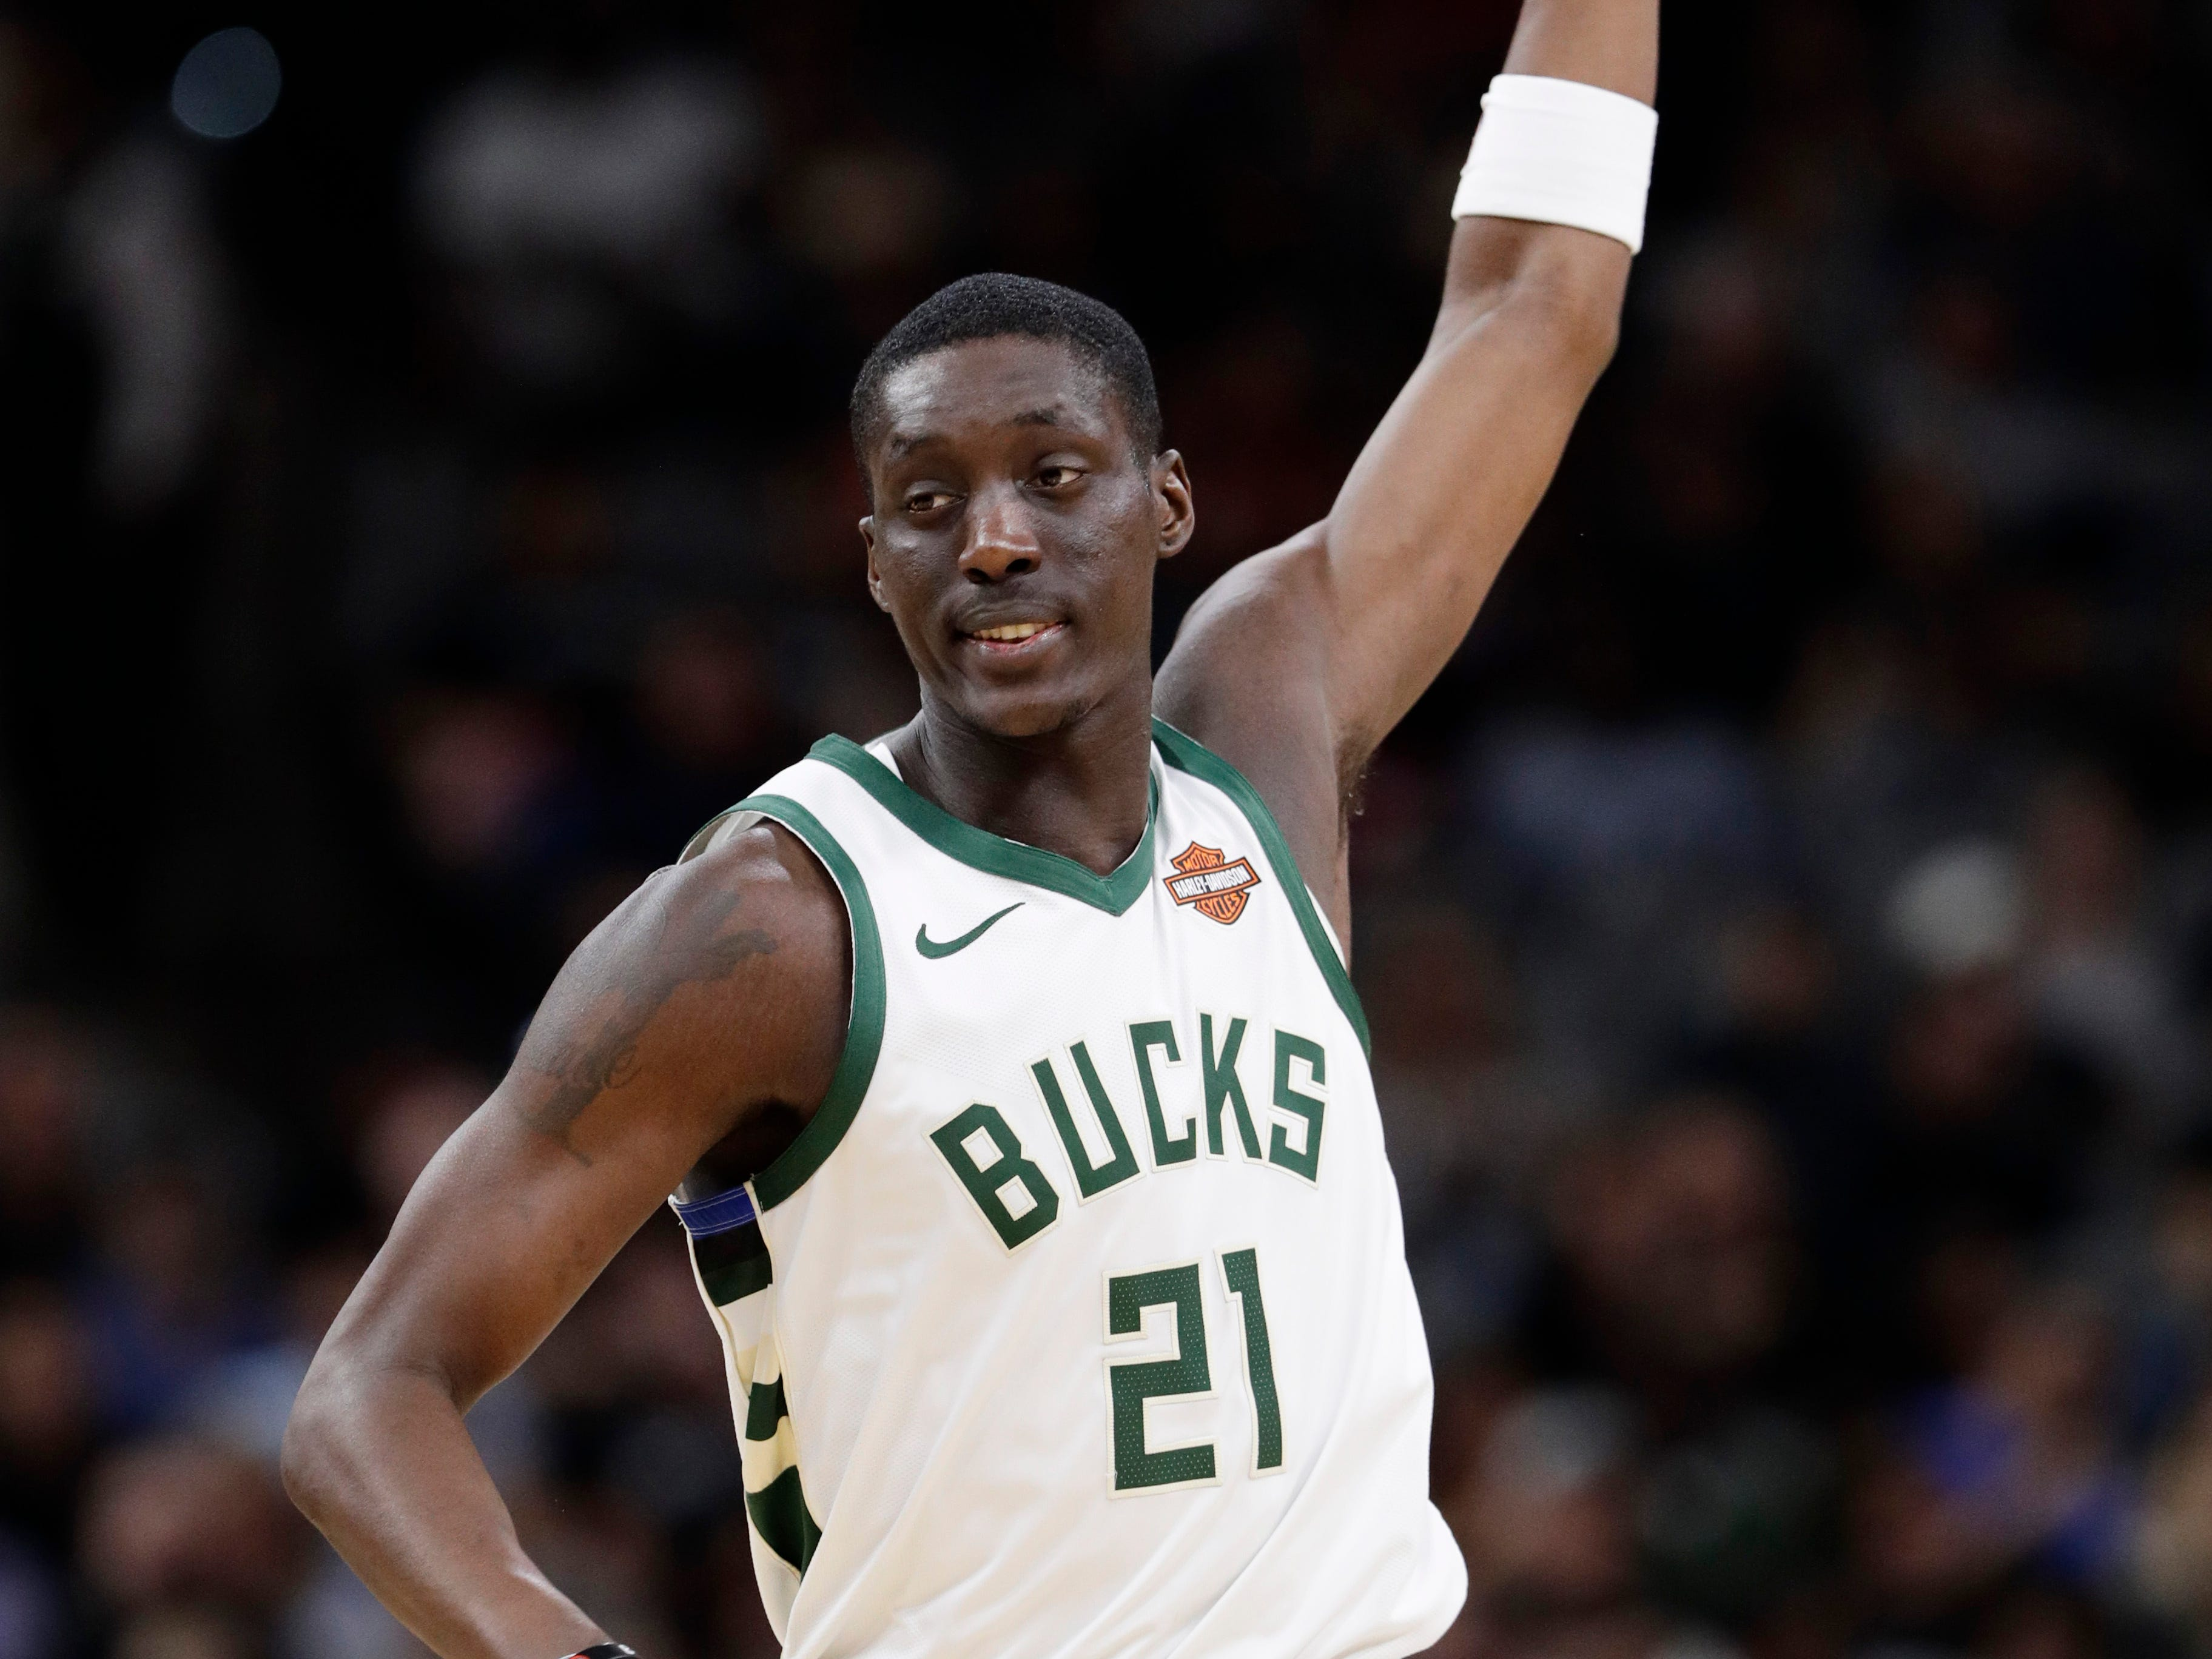 Bucks guard Tony Snell holds up a finger after hitting a shot against the Spurs on Sunday.